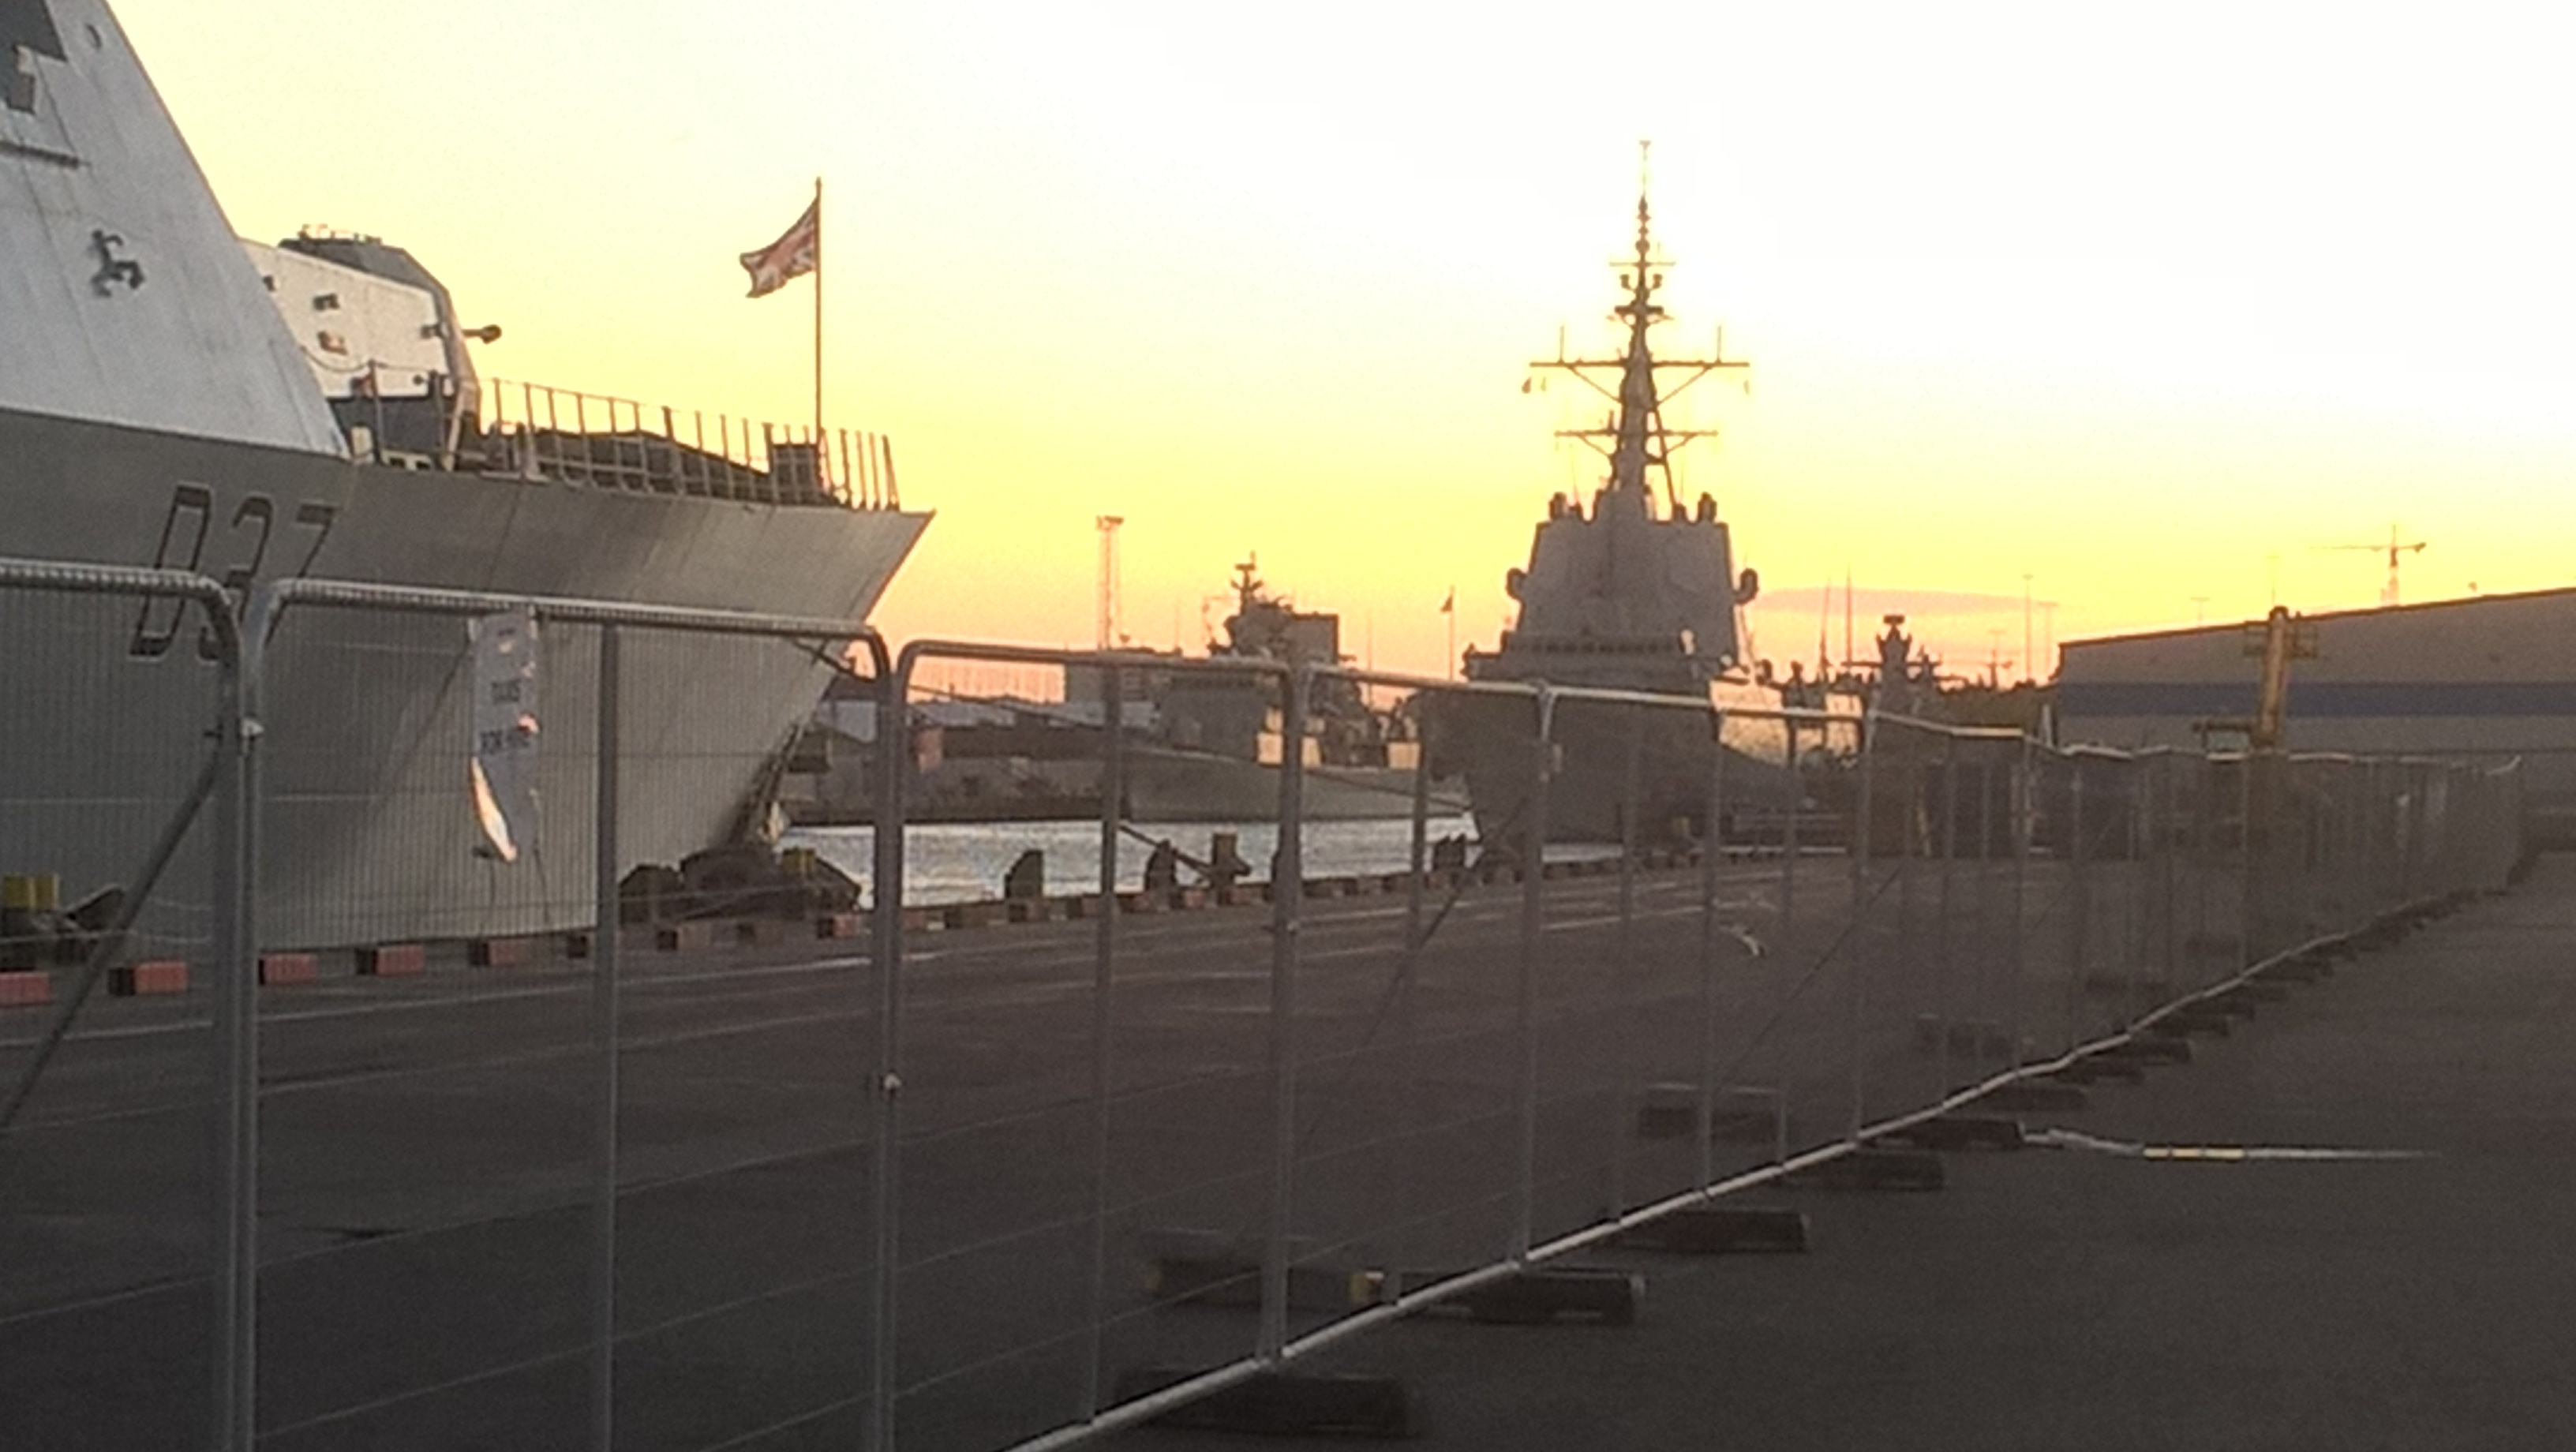 Nato ships at sunset over Belfast